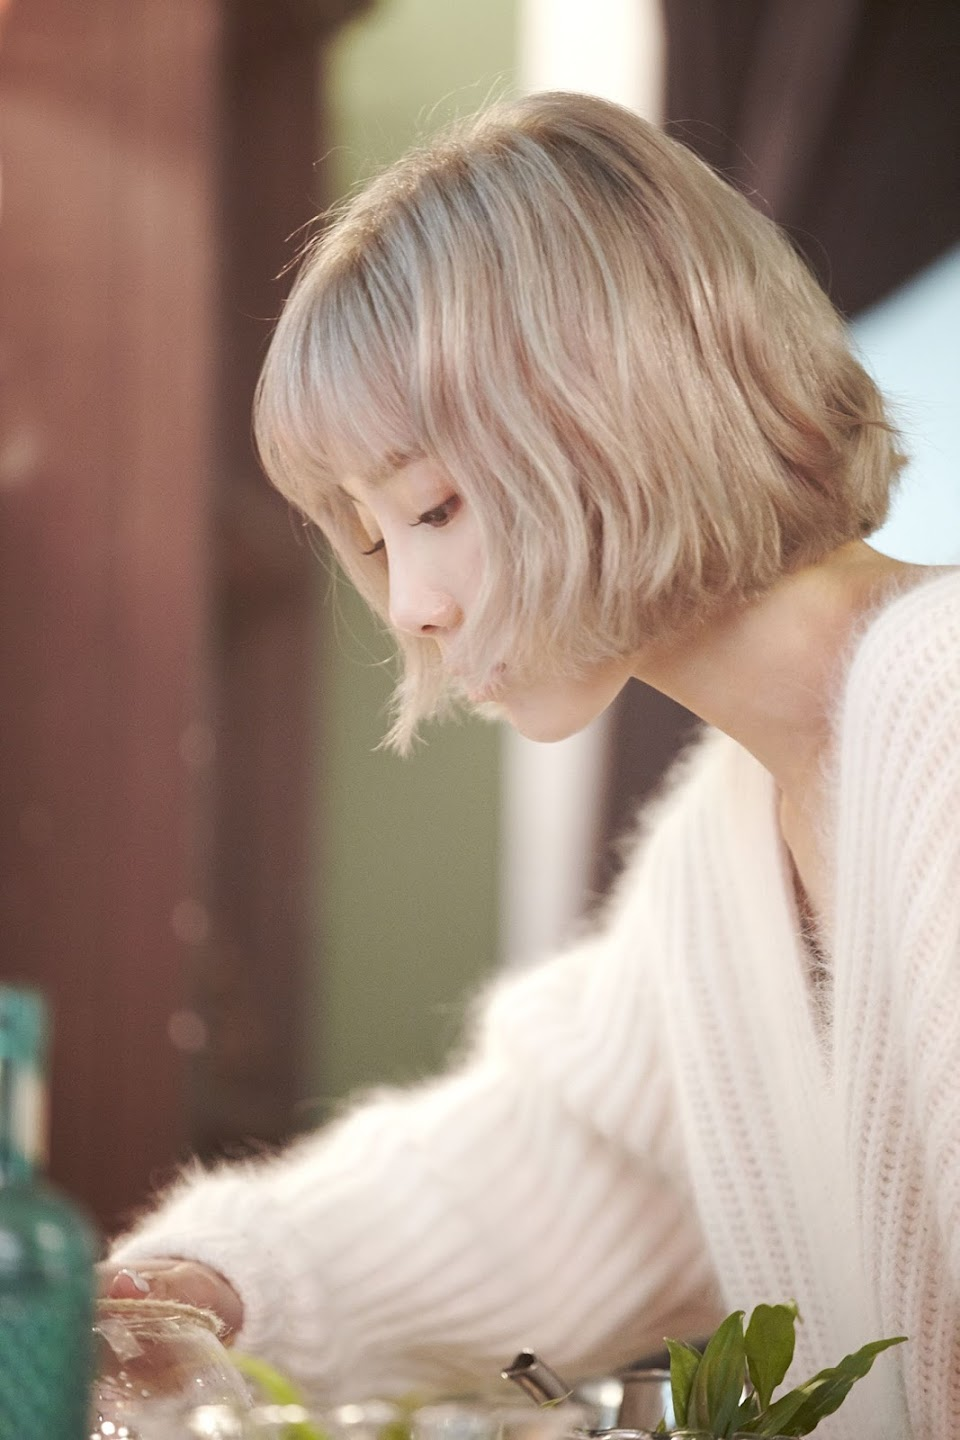 taeyeonhairstyles_7a